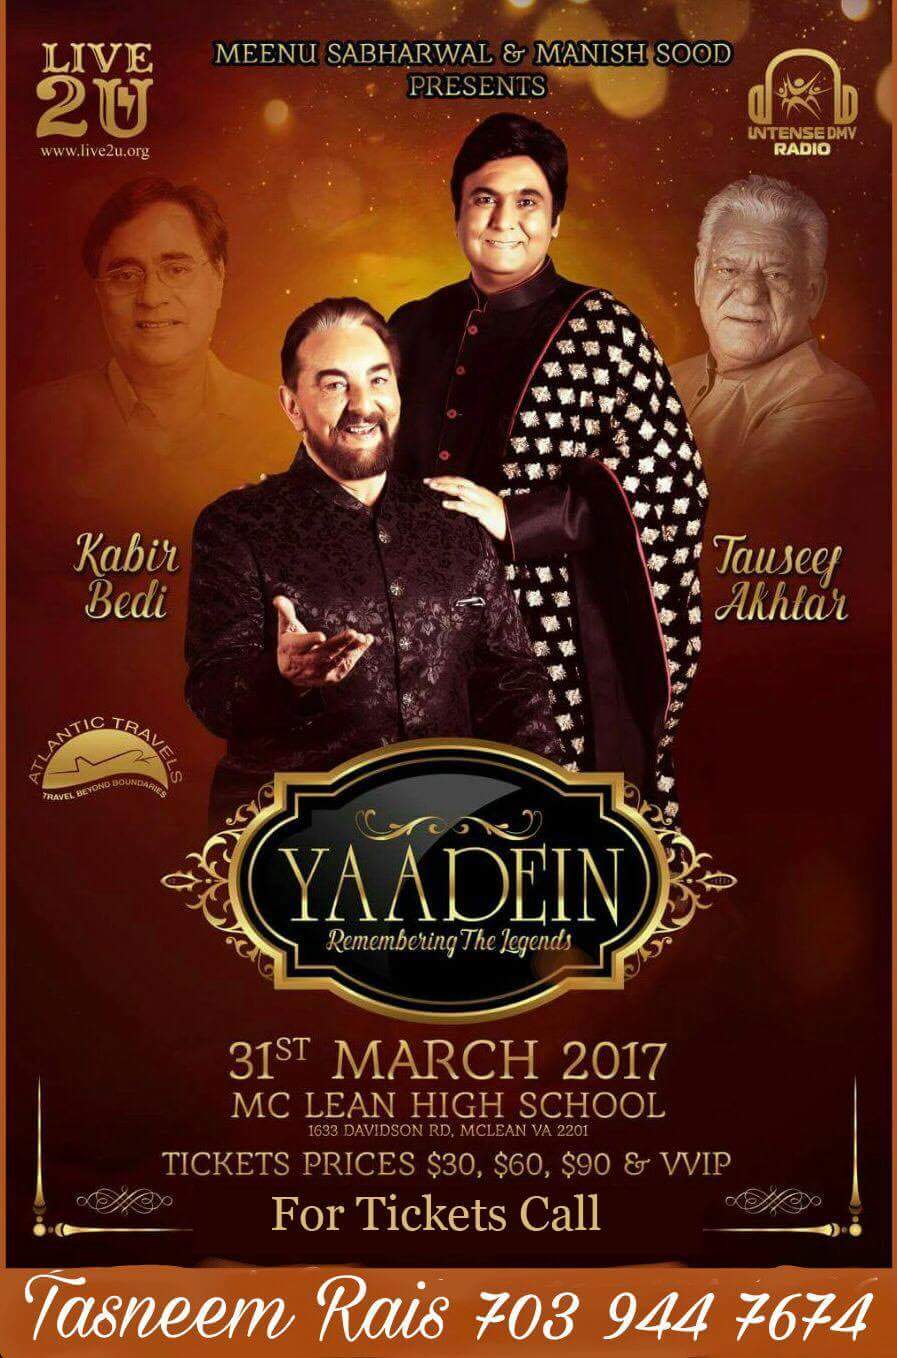 Yaadein 2017: Grand Tribute To The Ghazal King Jagjit Singh By Tauseef Akhtar with Kabir Bedi in VIRGINIA on Friday March 31st